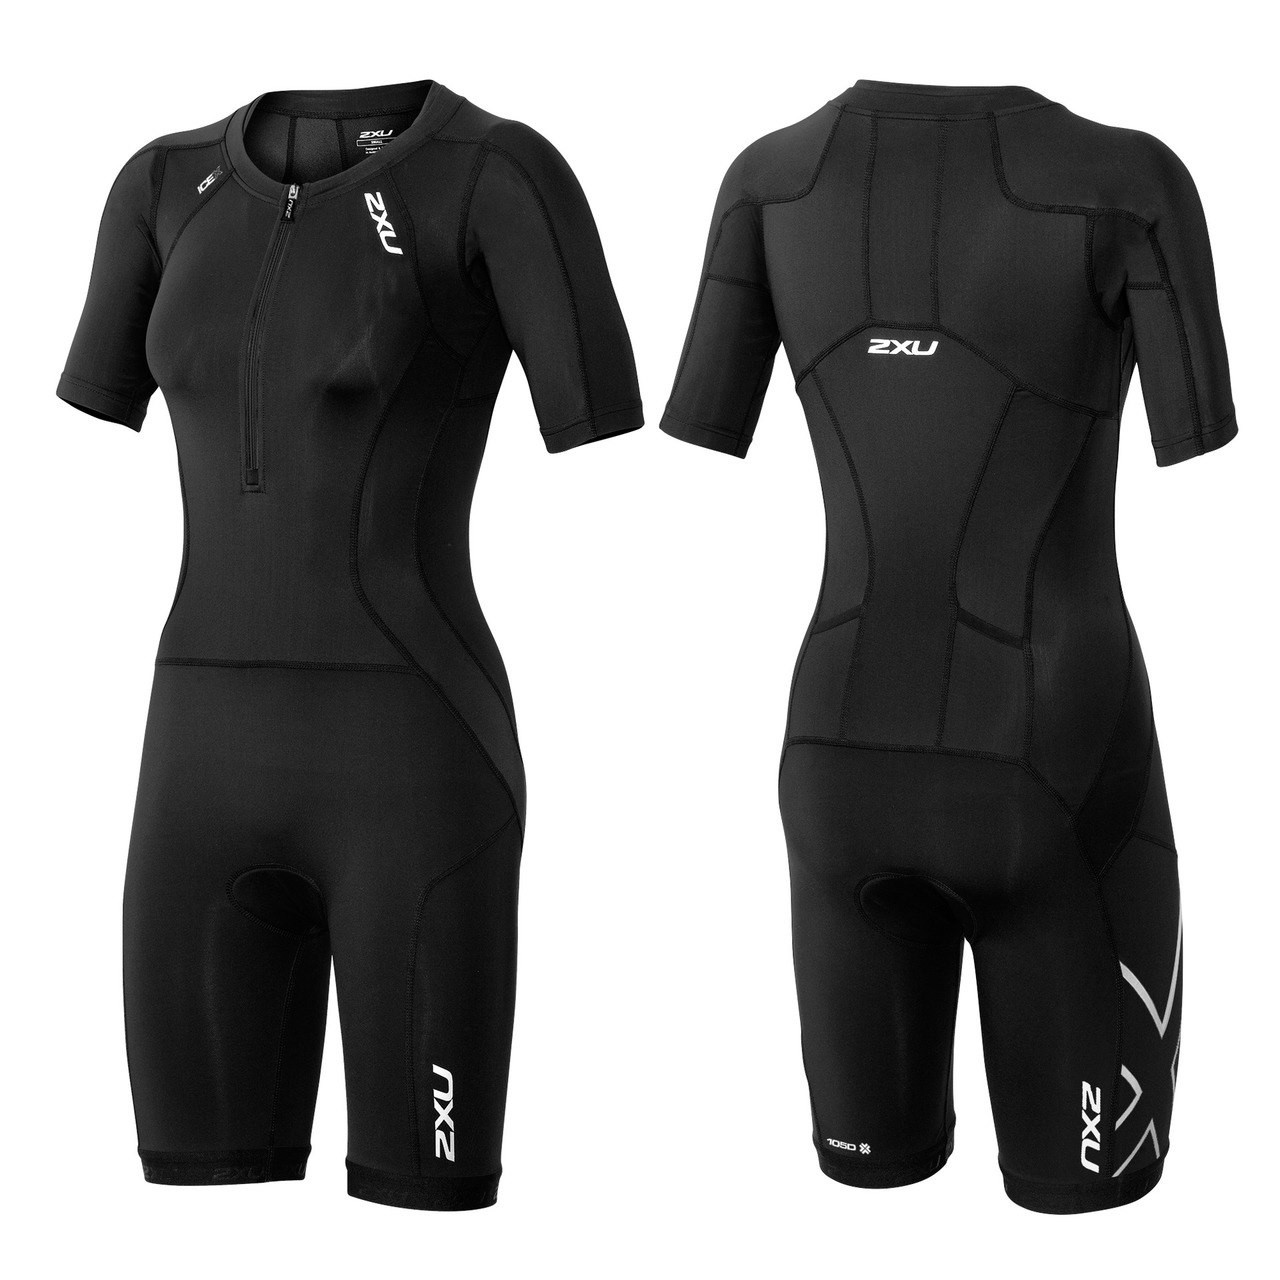 2xu Women S Compression Sleeved Tri Suit 2016